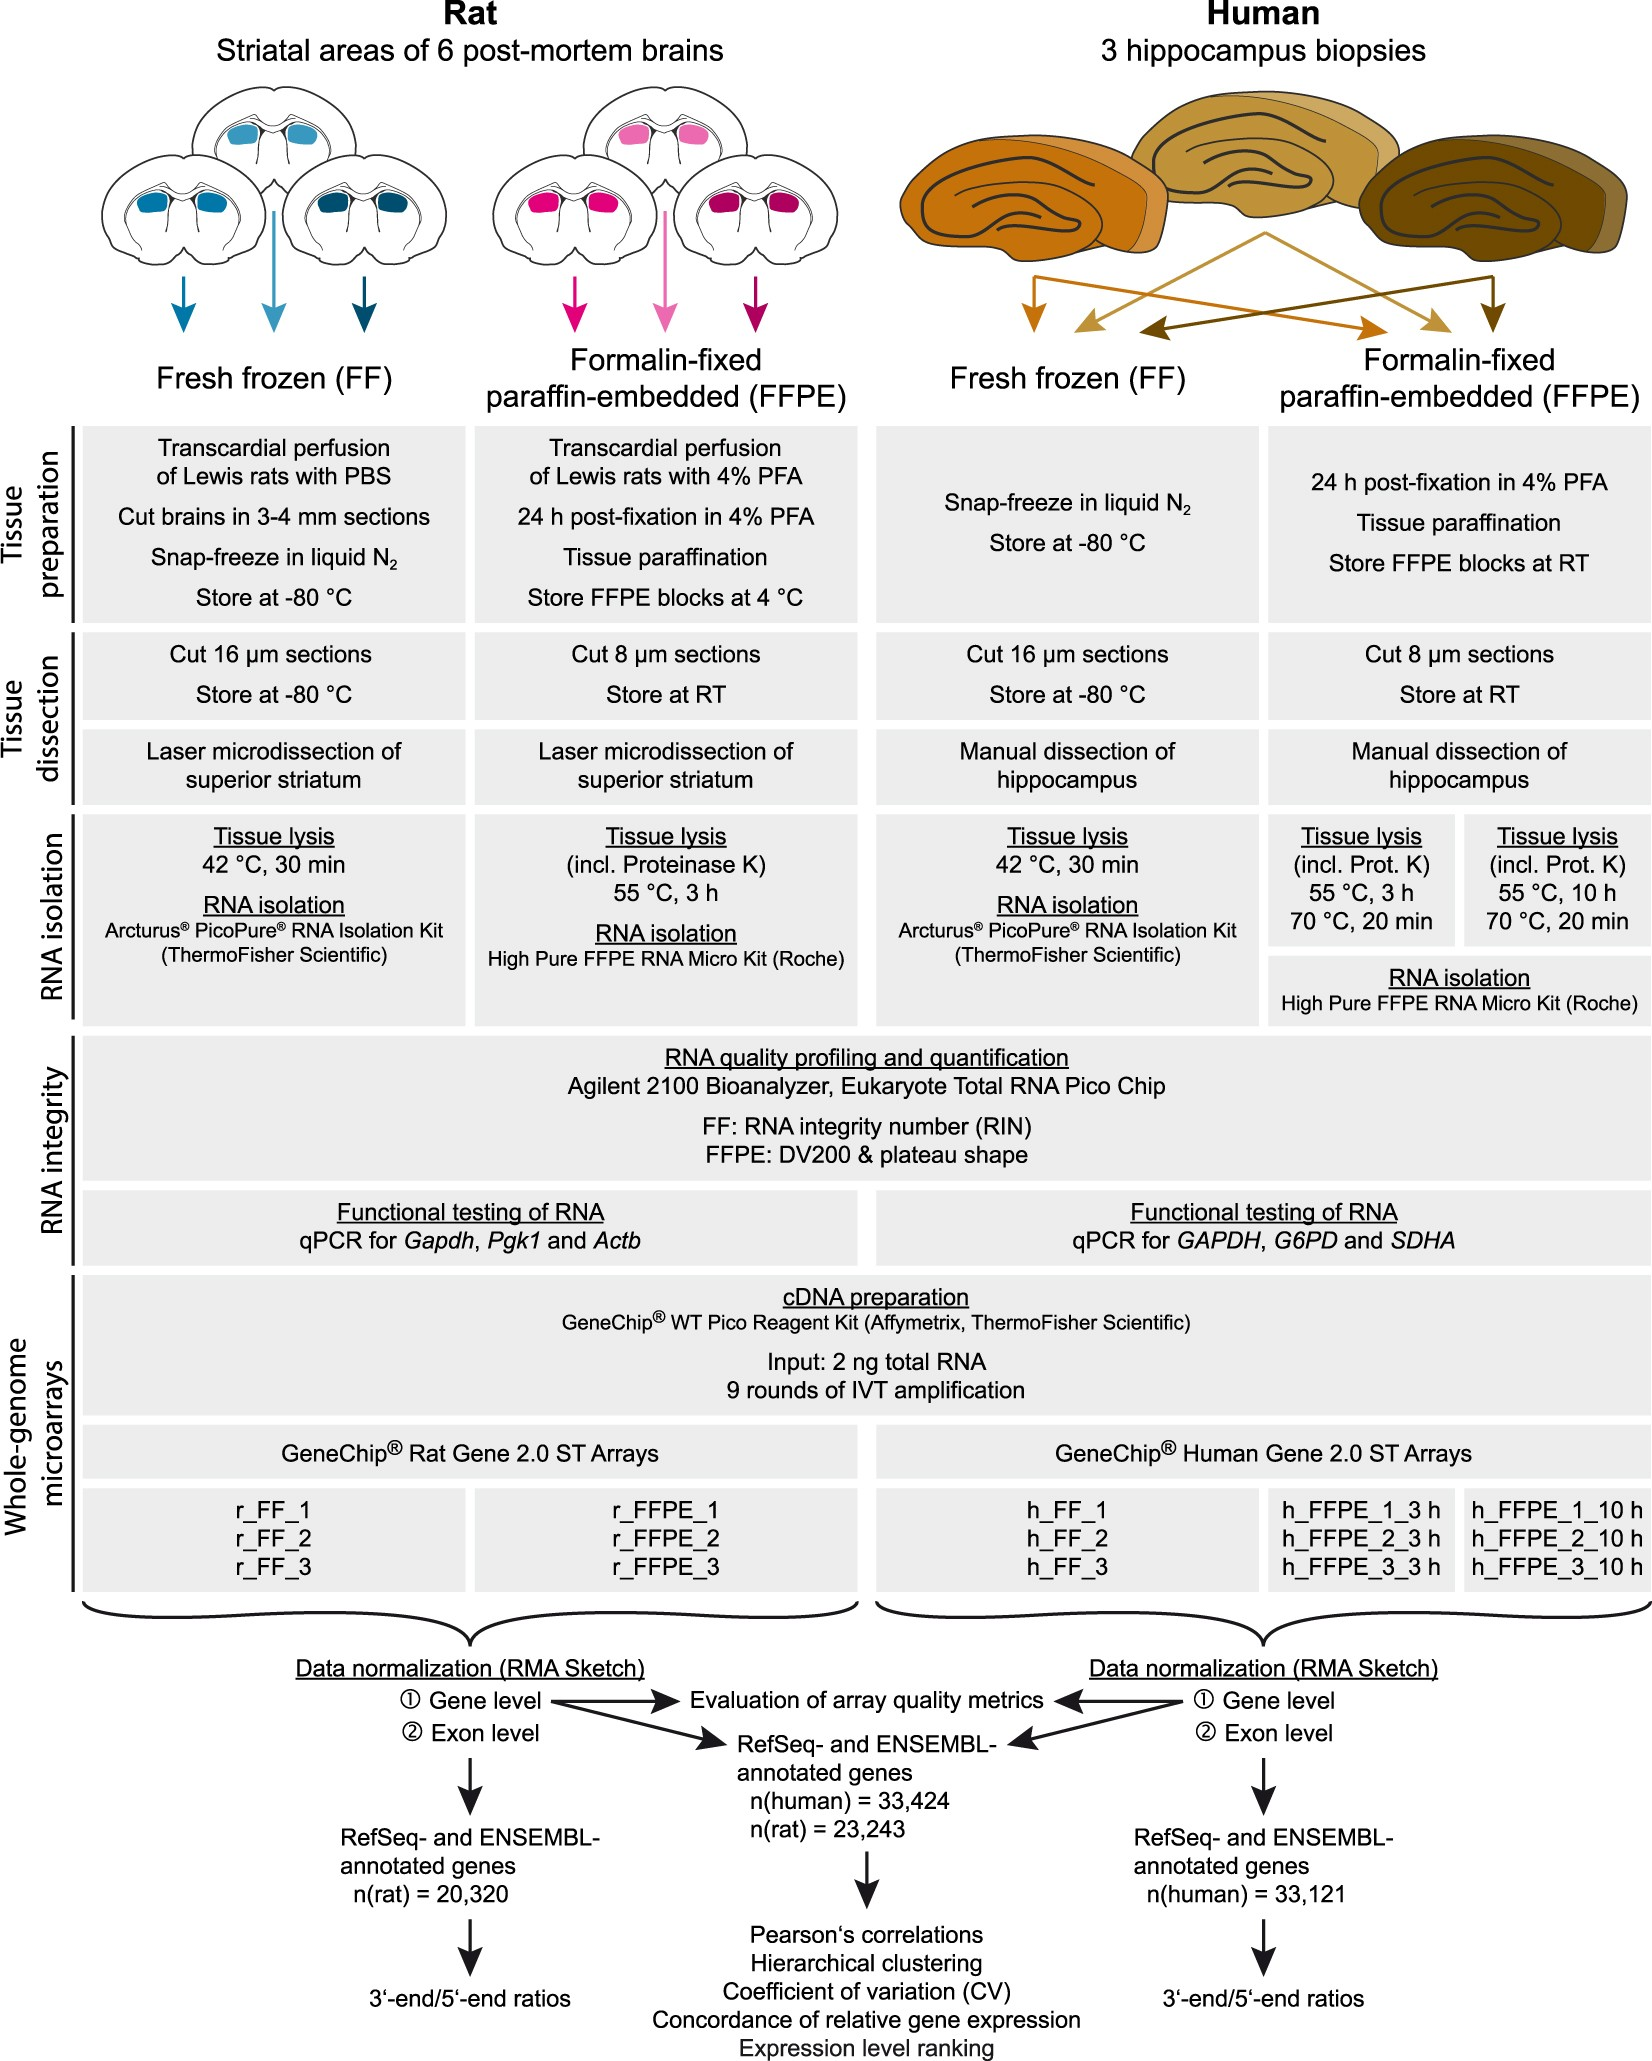 Systematic evaluation of RNA quality, microarray data reliability